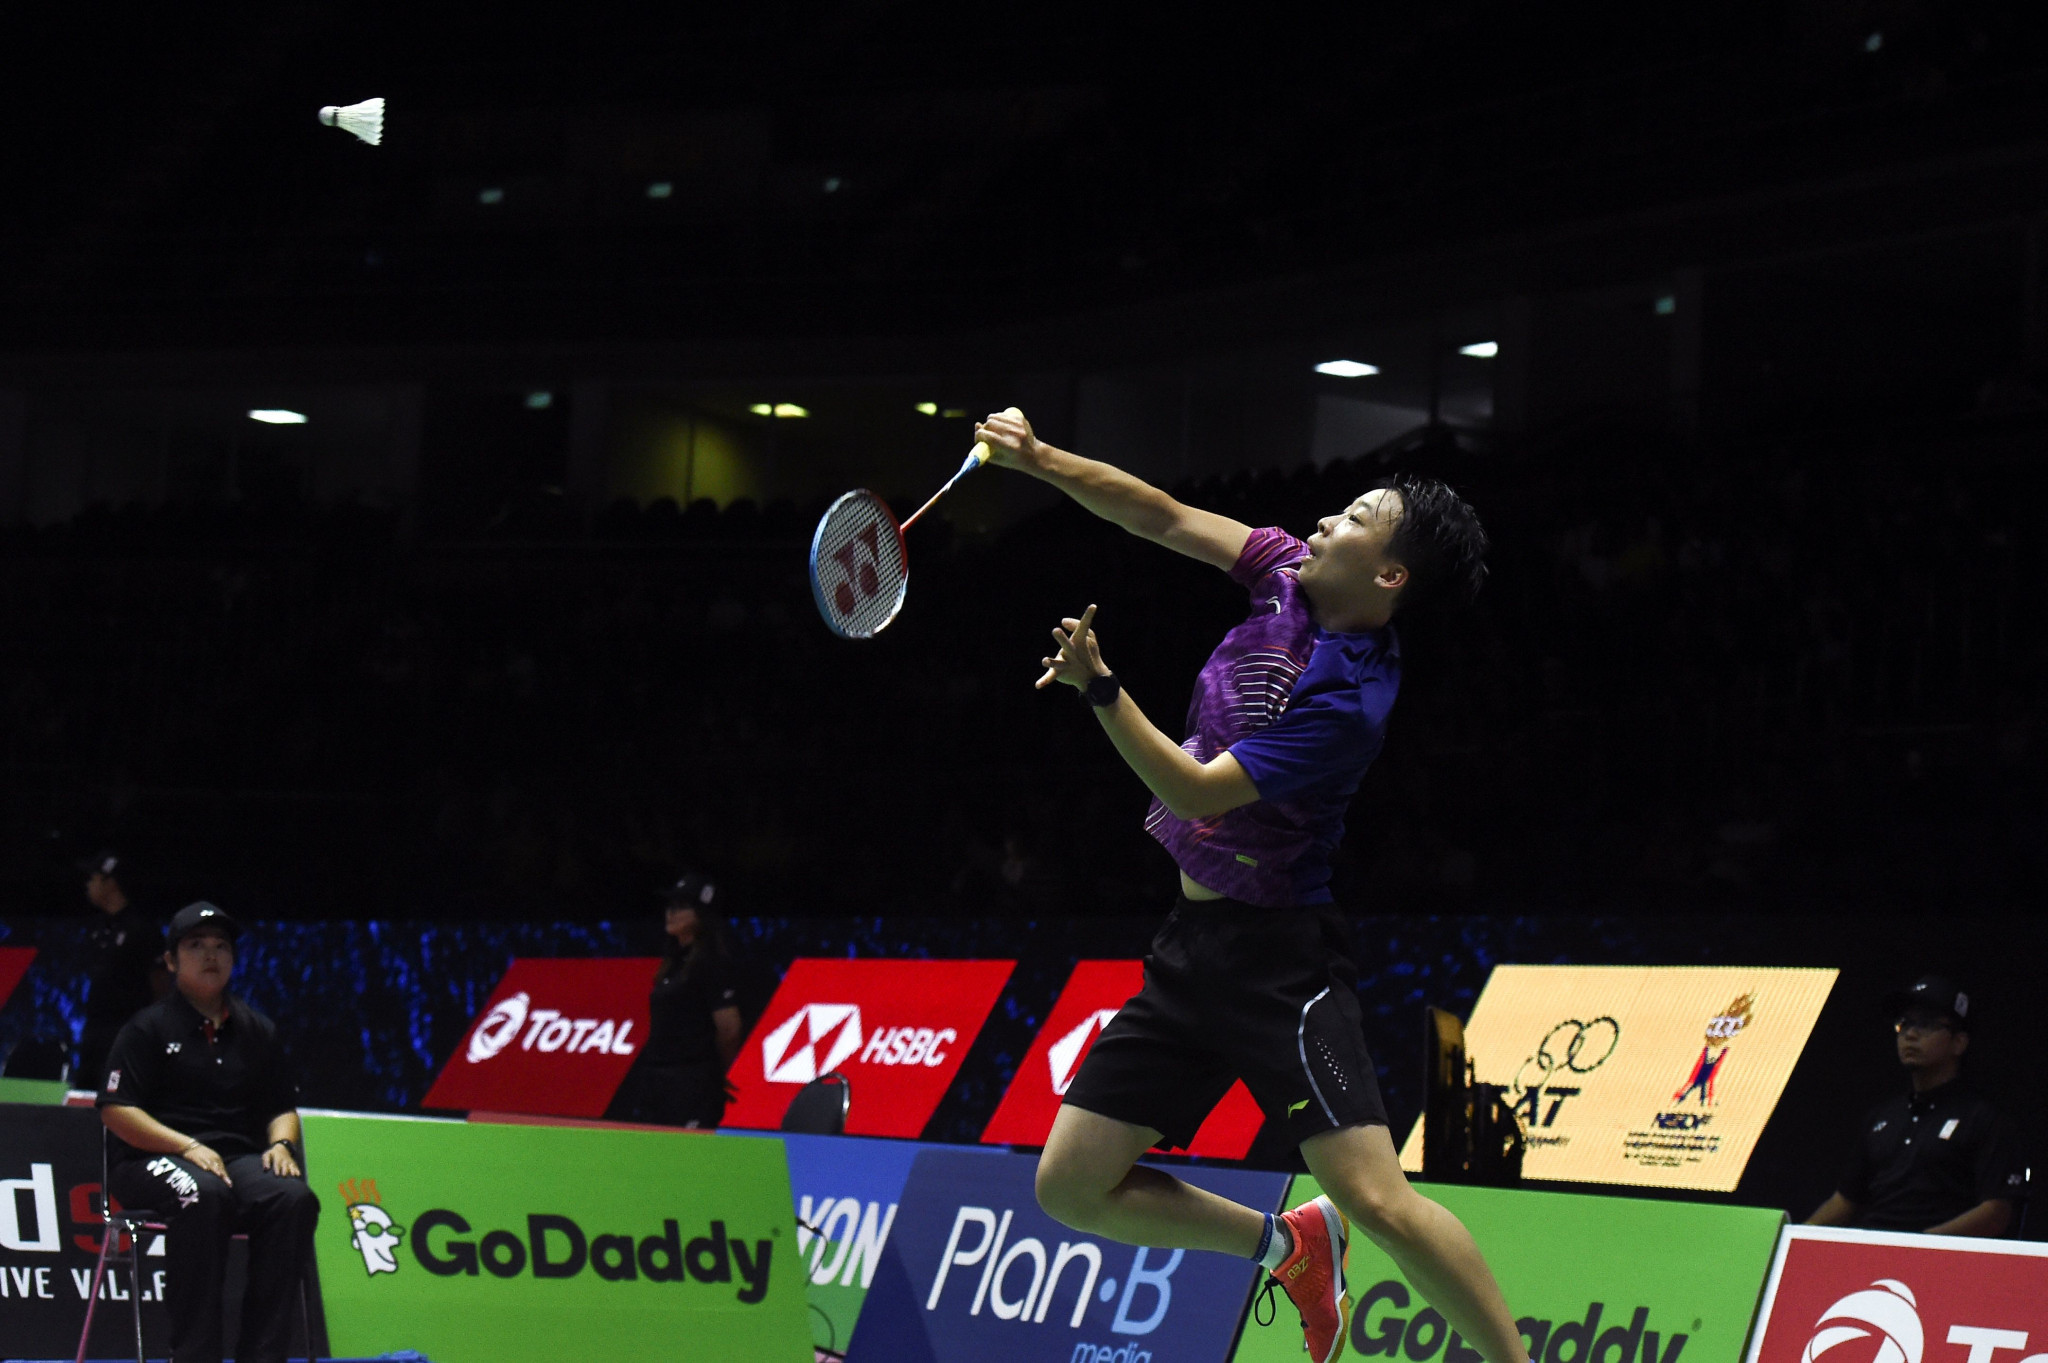 Chen to defend title at Oceania Badminton Championships in Ballarat